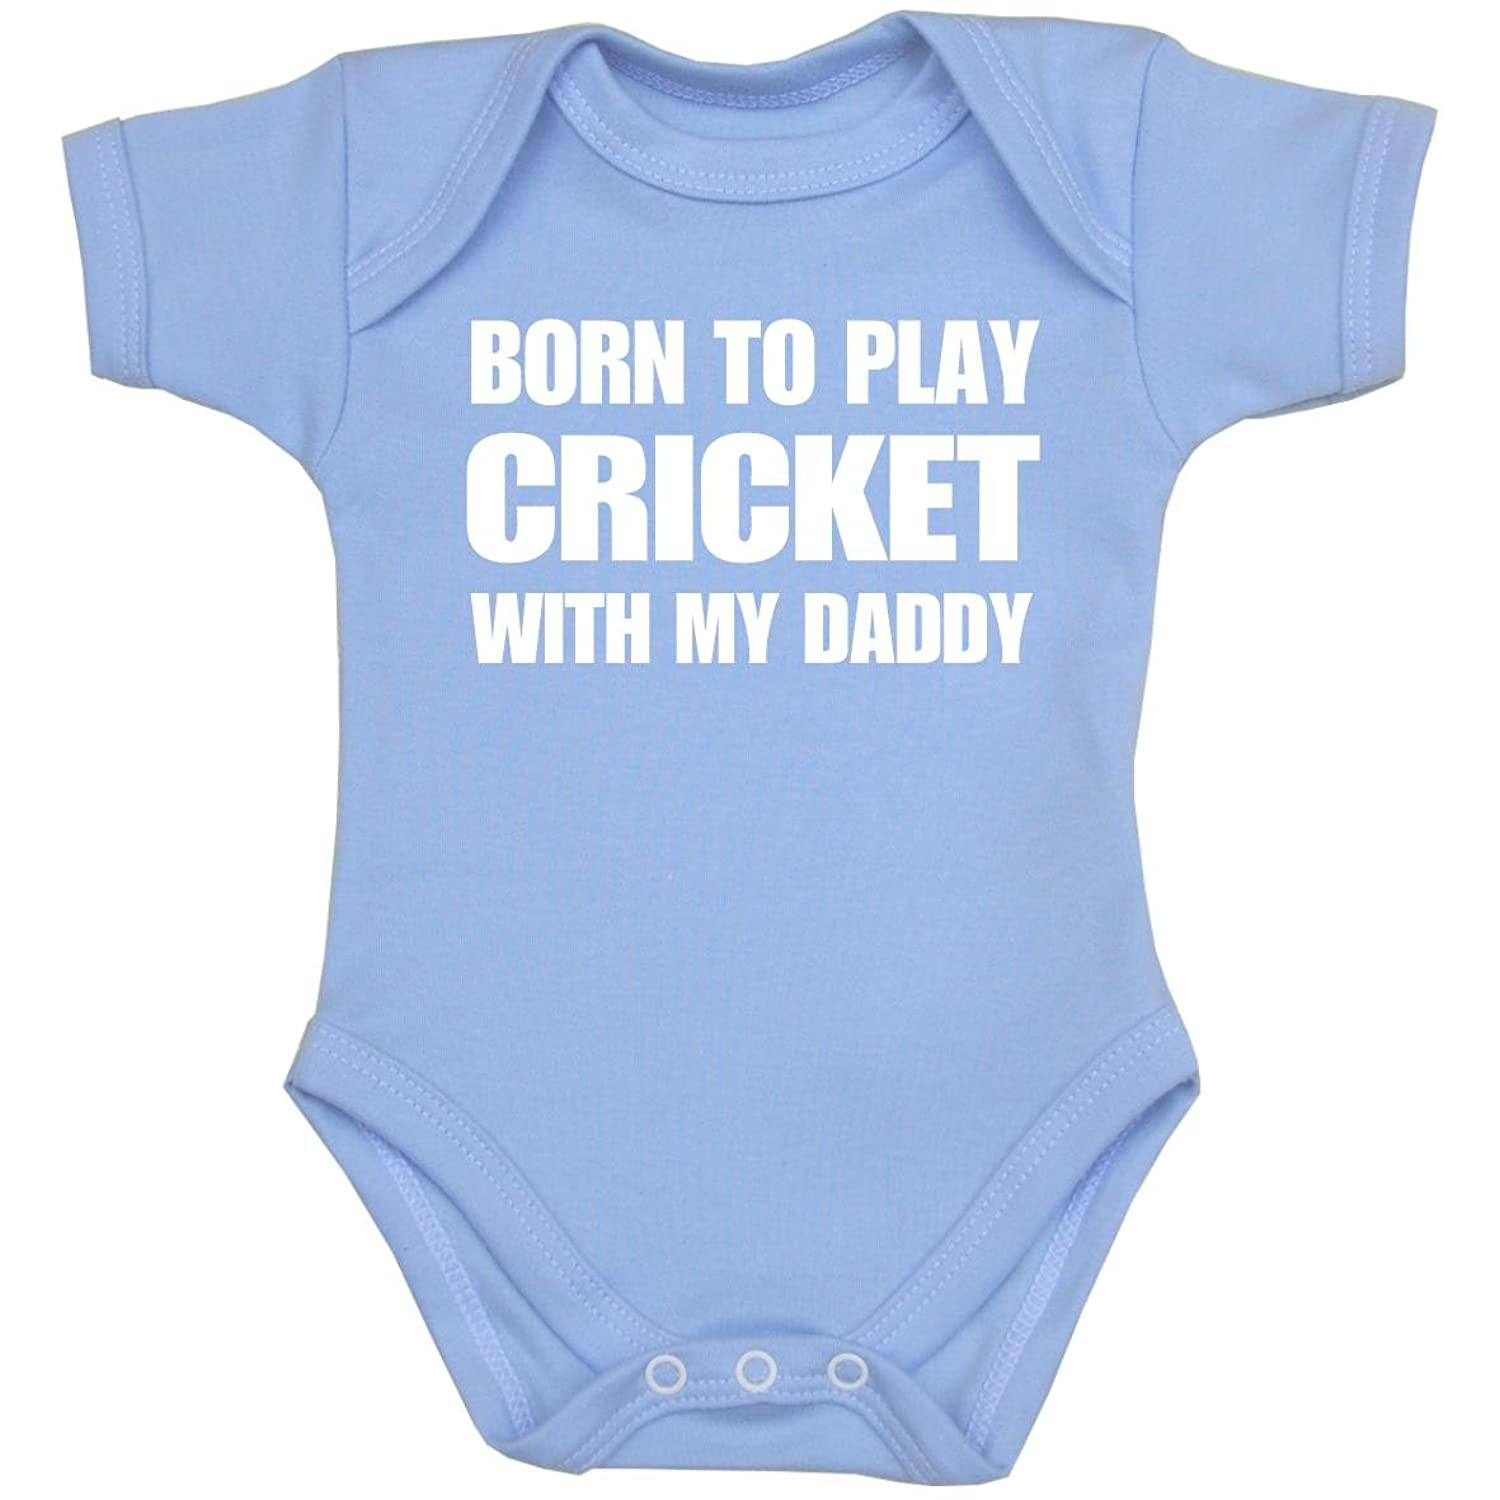 1 Born to Play Cricket with my Daddy Baby Clothes Bodysuit Vest NB